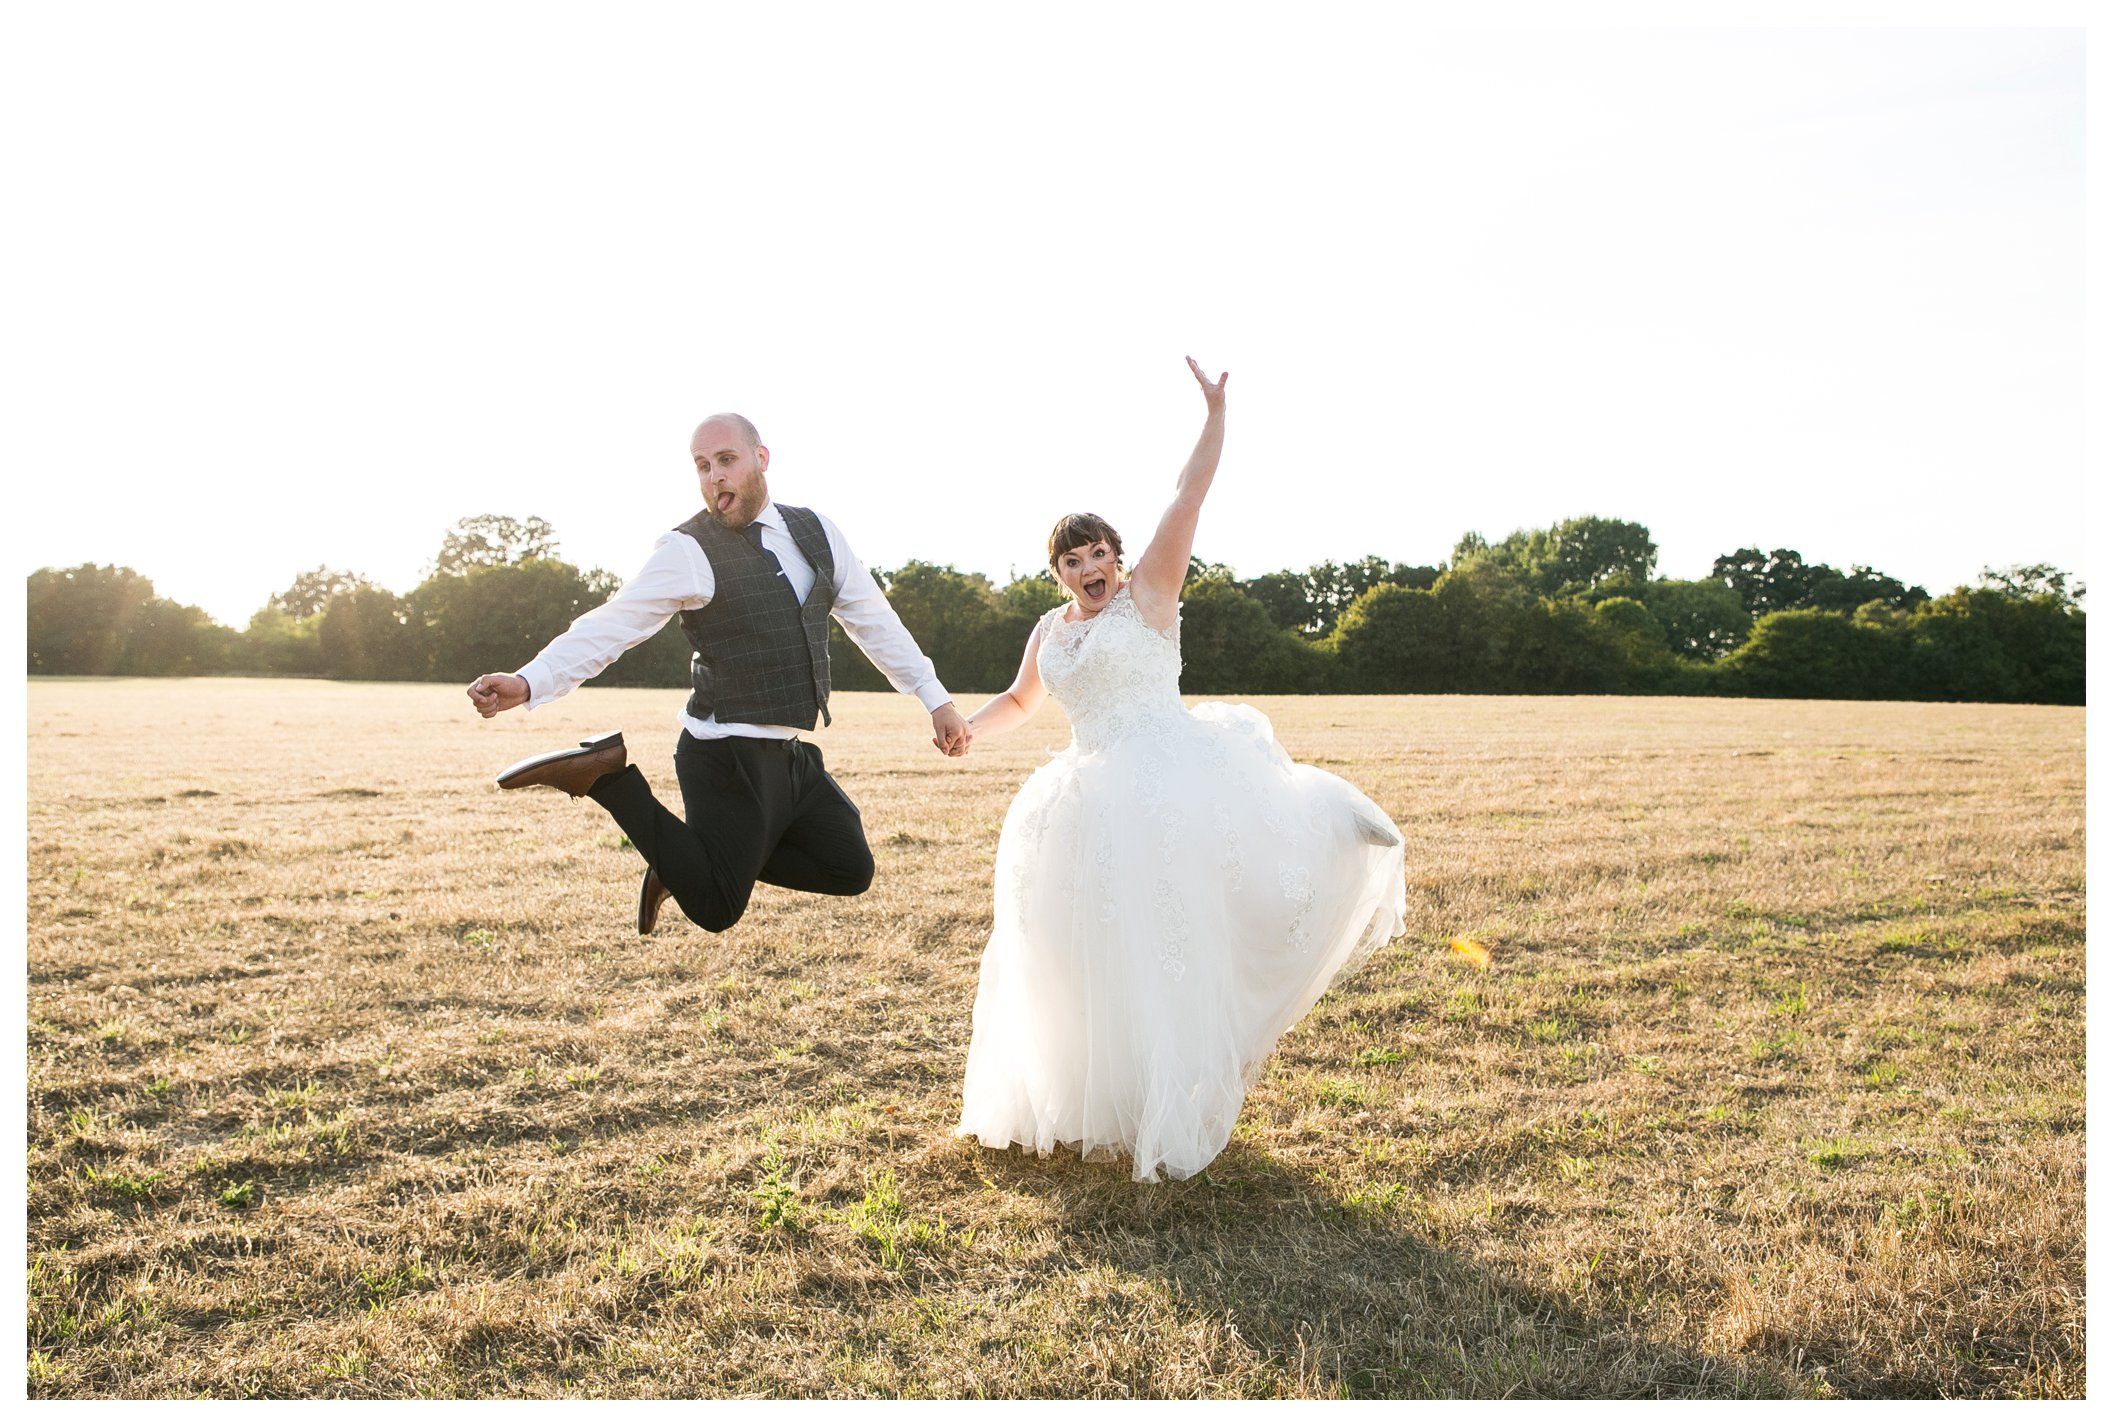 bride and groom jumping for joy in a suffolk field on their wedding day